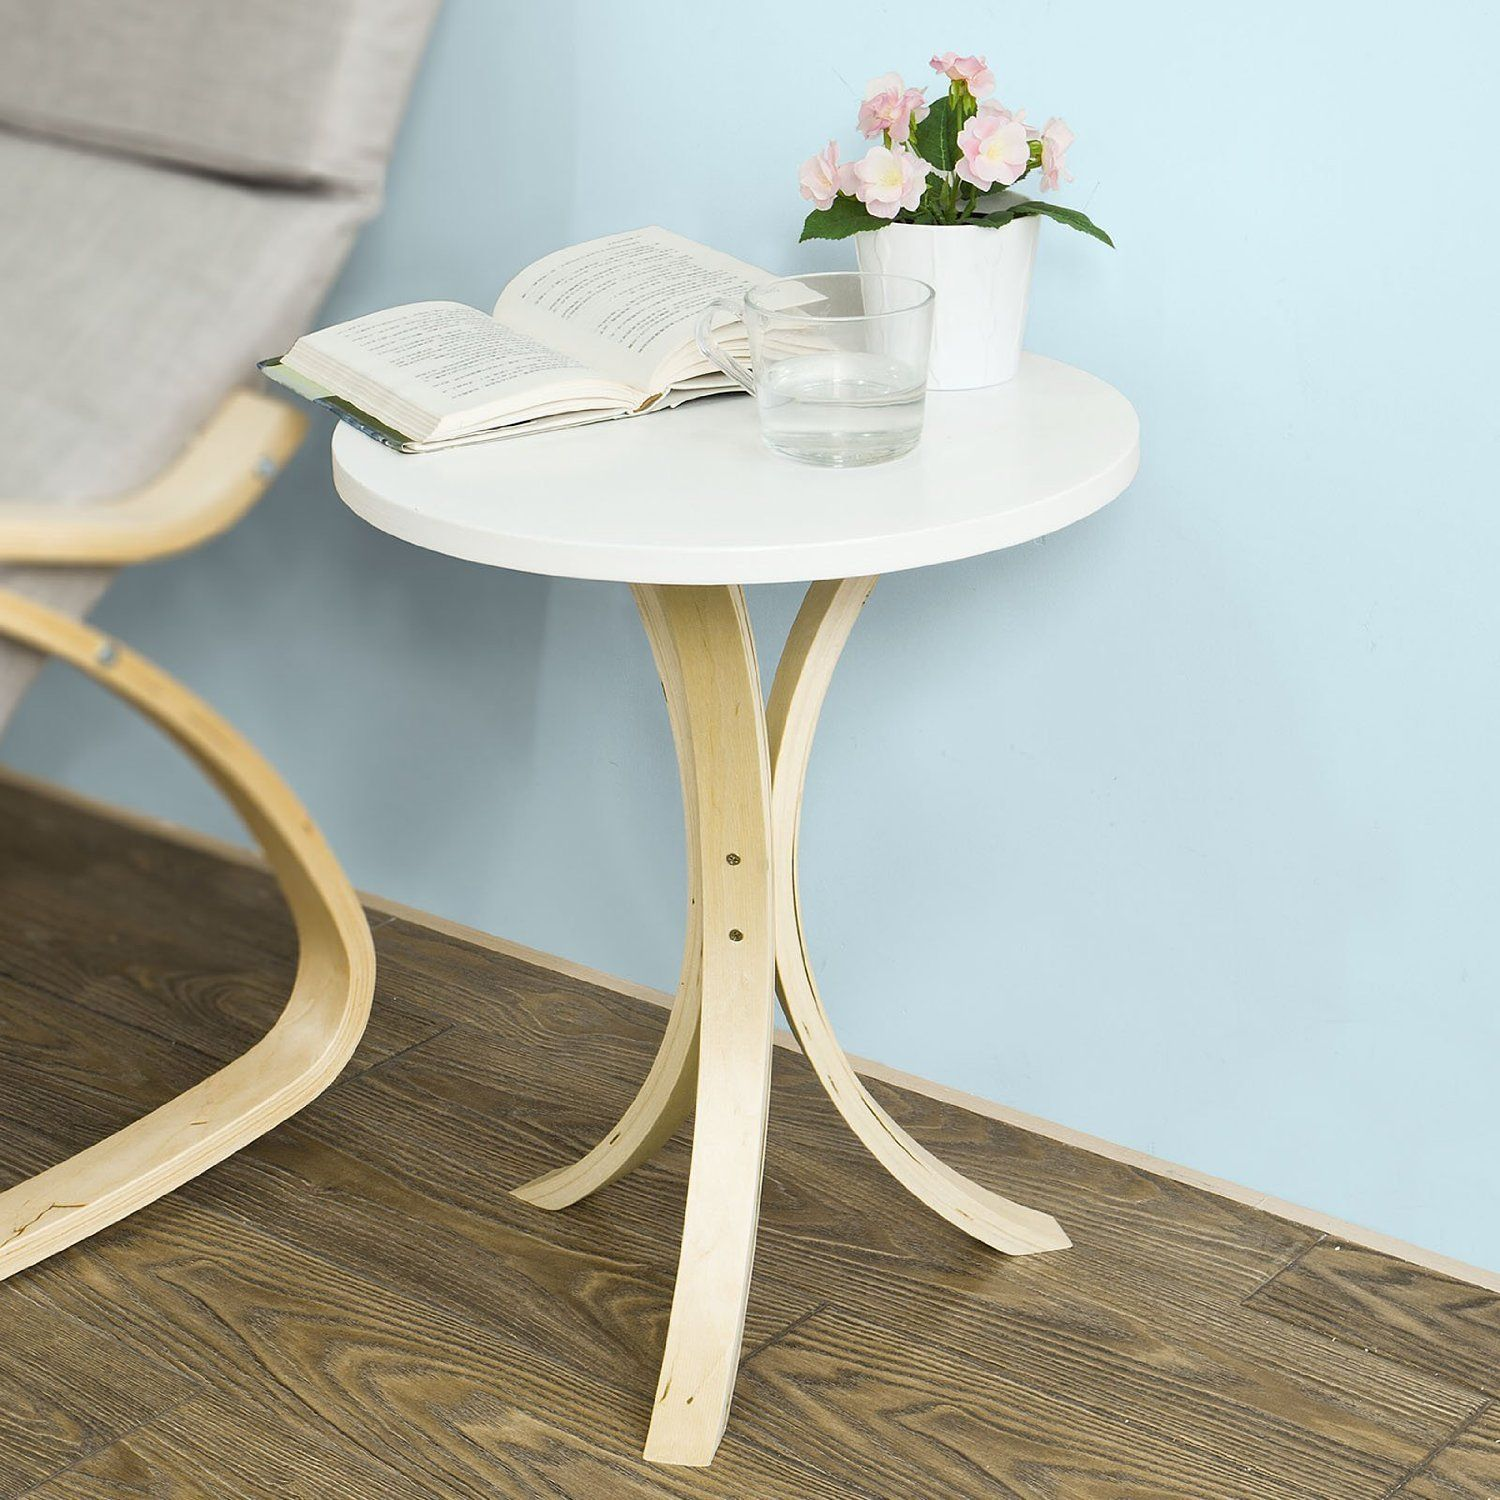 SoBuy® Round Wooden Side Table, Tea Coffee